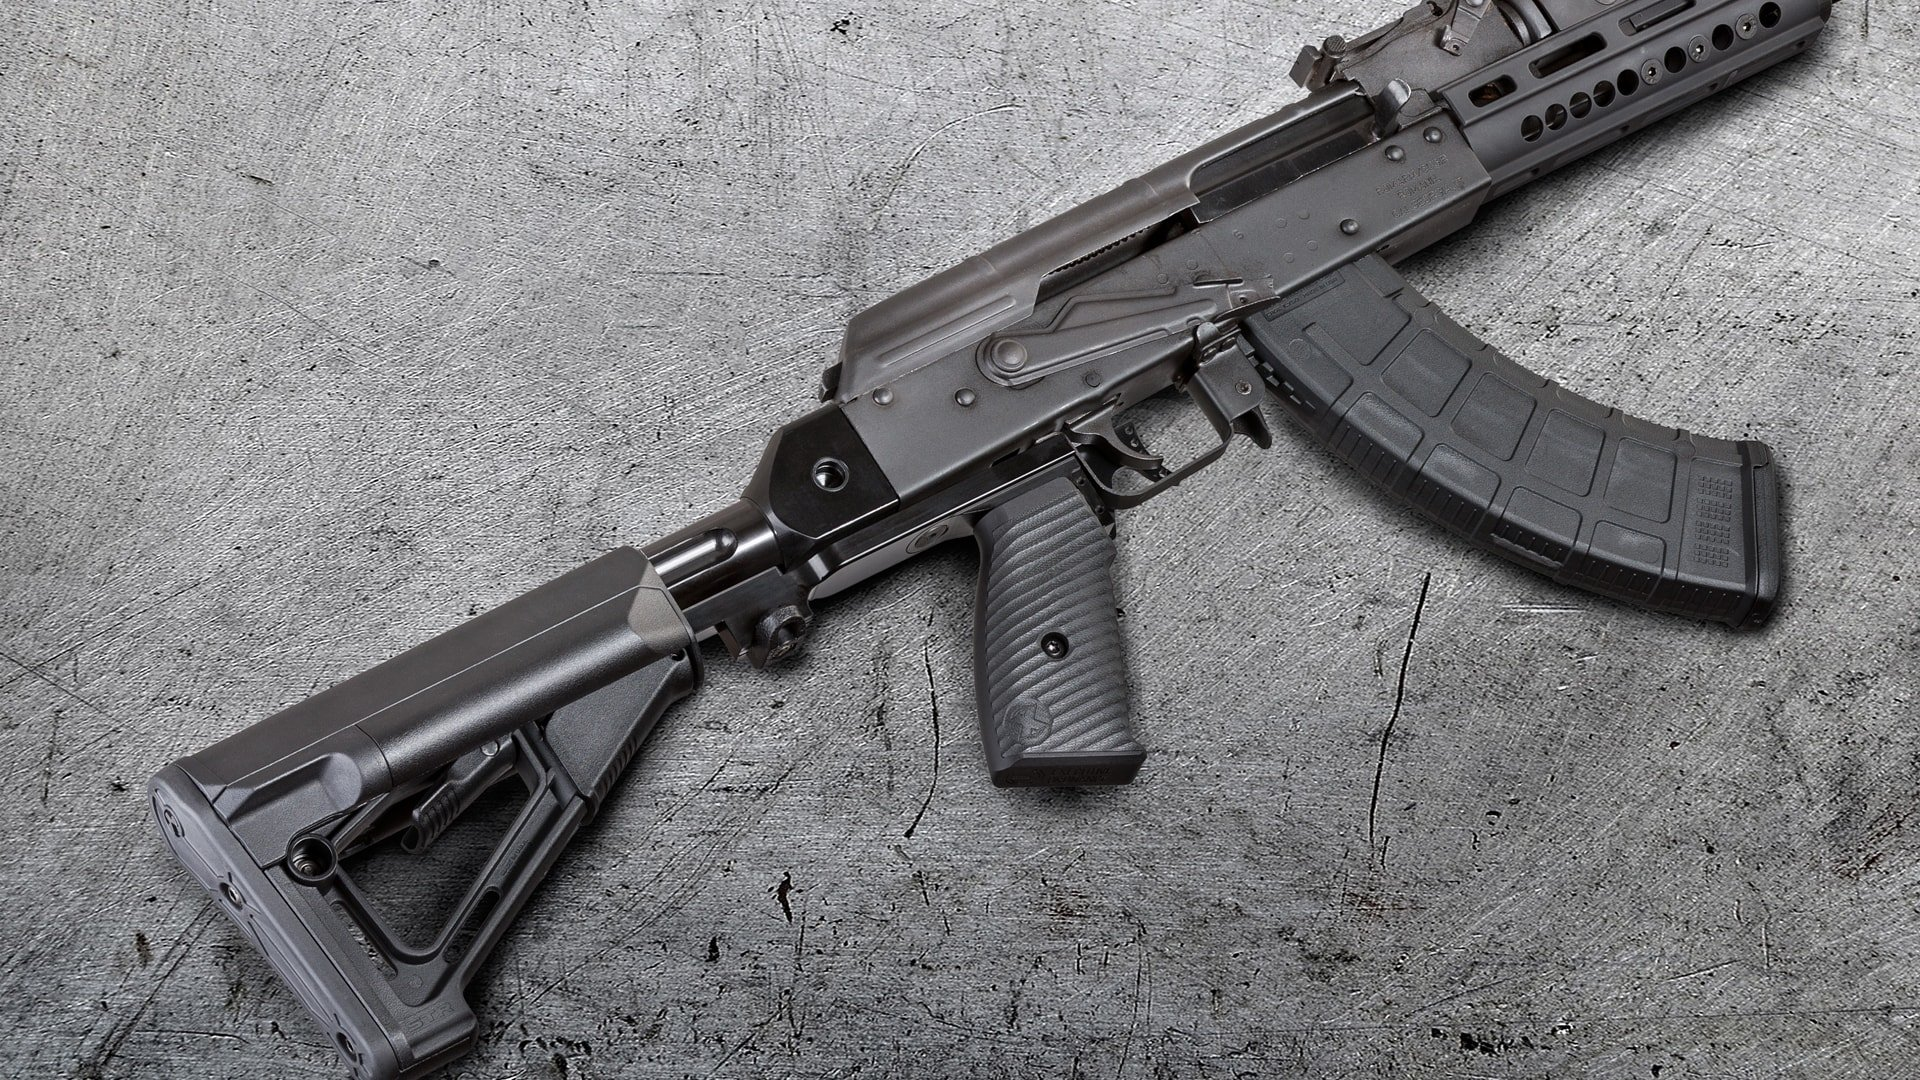 Military Tanks For Sale >> Lockhart Tactical | Military and Police Discounts up to 60% OFF - Slidefire SSAK-47 HYB PAP - RH ...